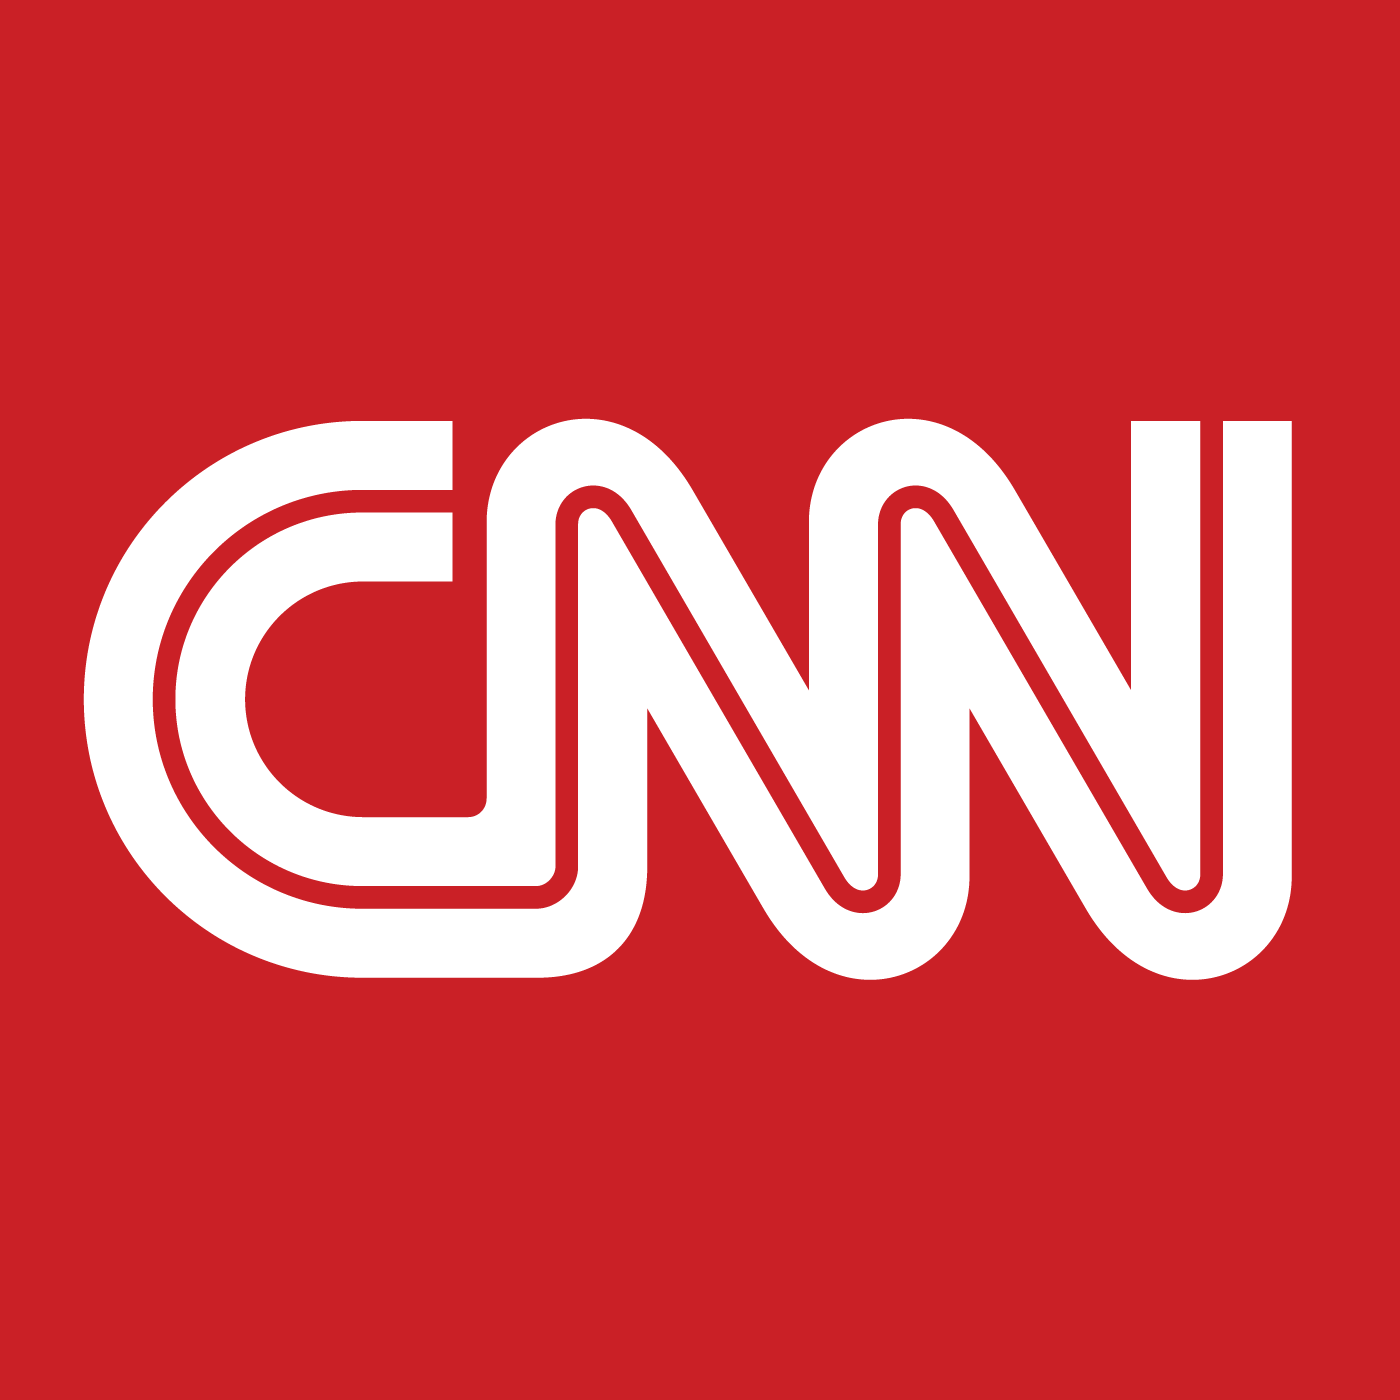 CNN at BUREAU NEWS